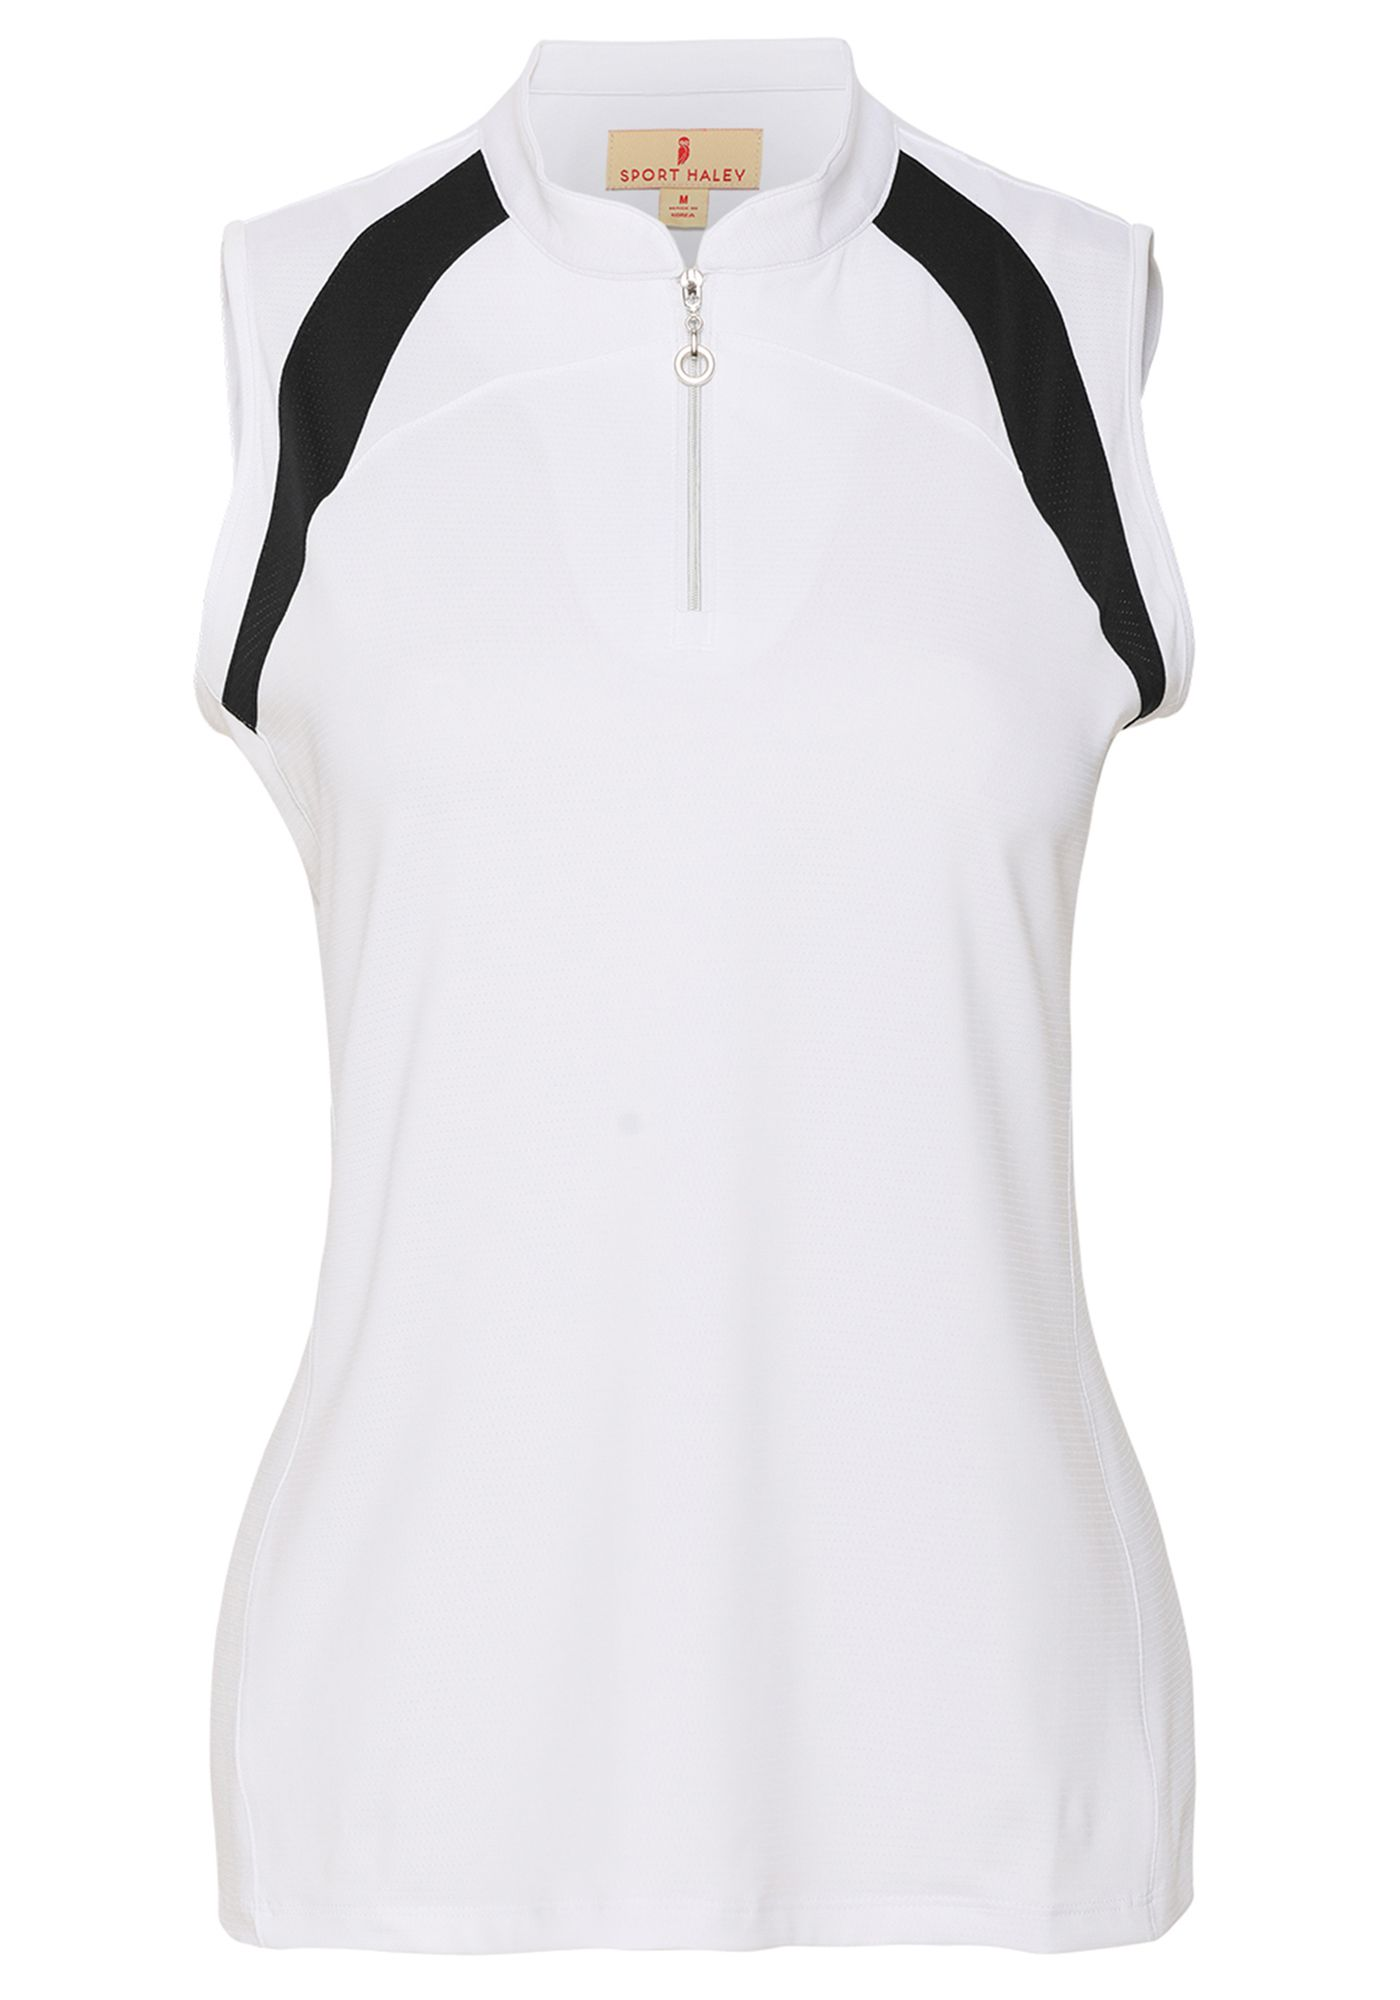 Sport Haley Women's Orca Sleeveless Golf Polo